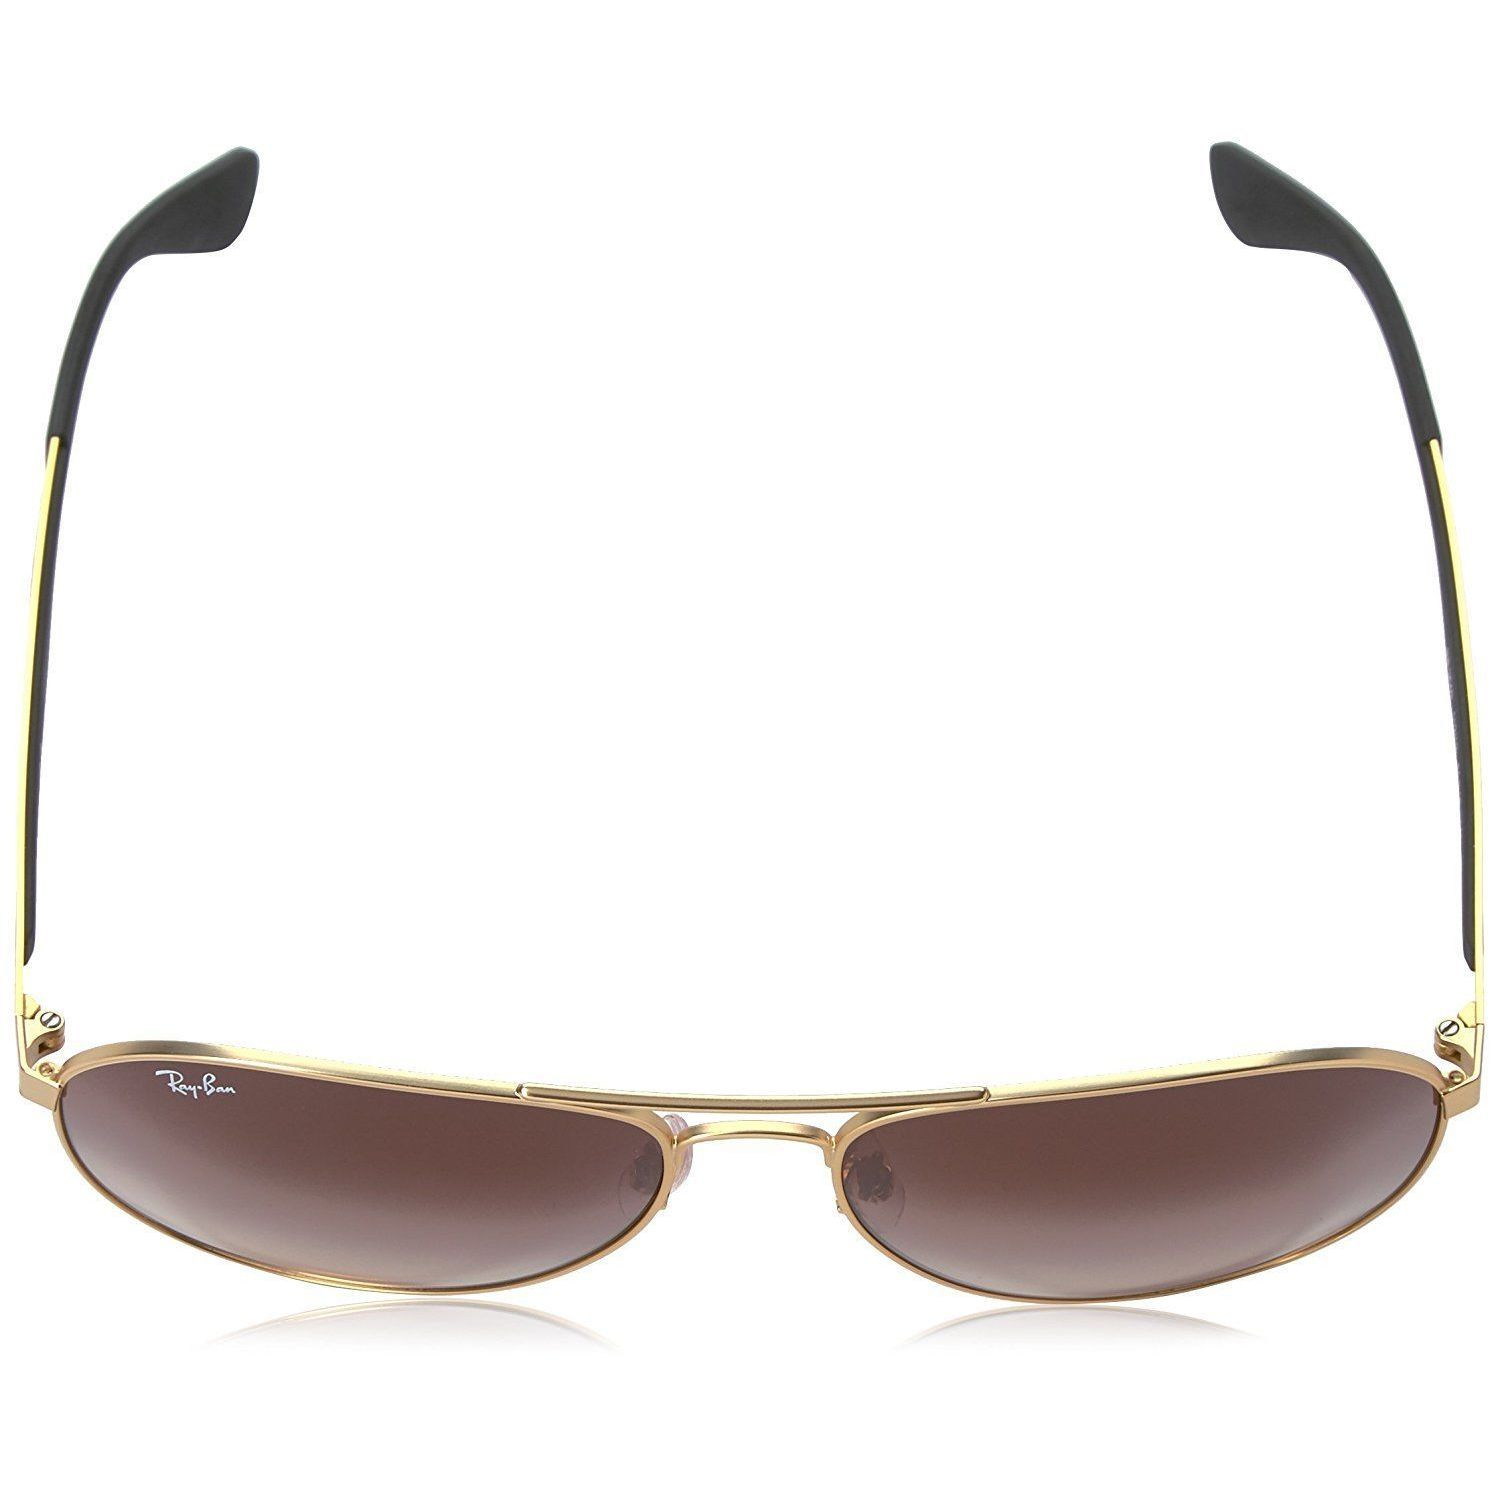 54acd5ea93415 Shop Ray-Ban RB3549 112 13 Men s Gold Black Frame Brown Gradient Lens  Sunglasses - Free Shipping Today - Overstock - 15079051